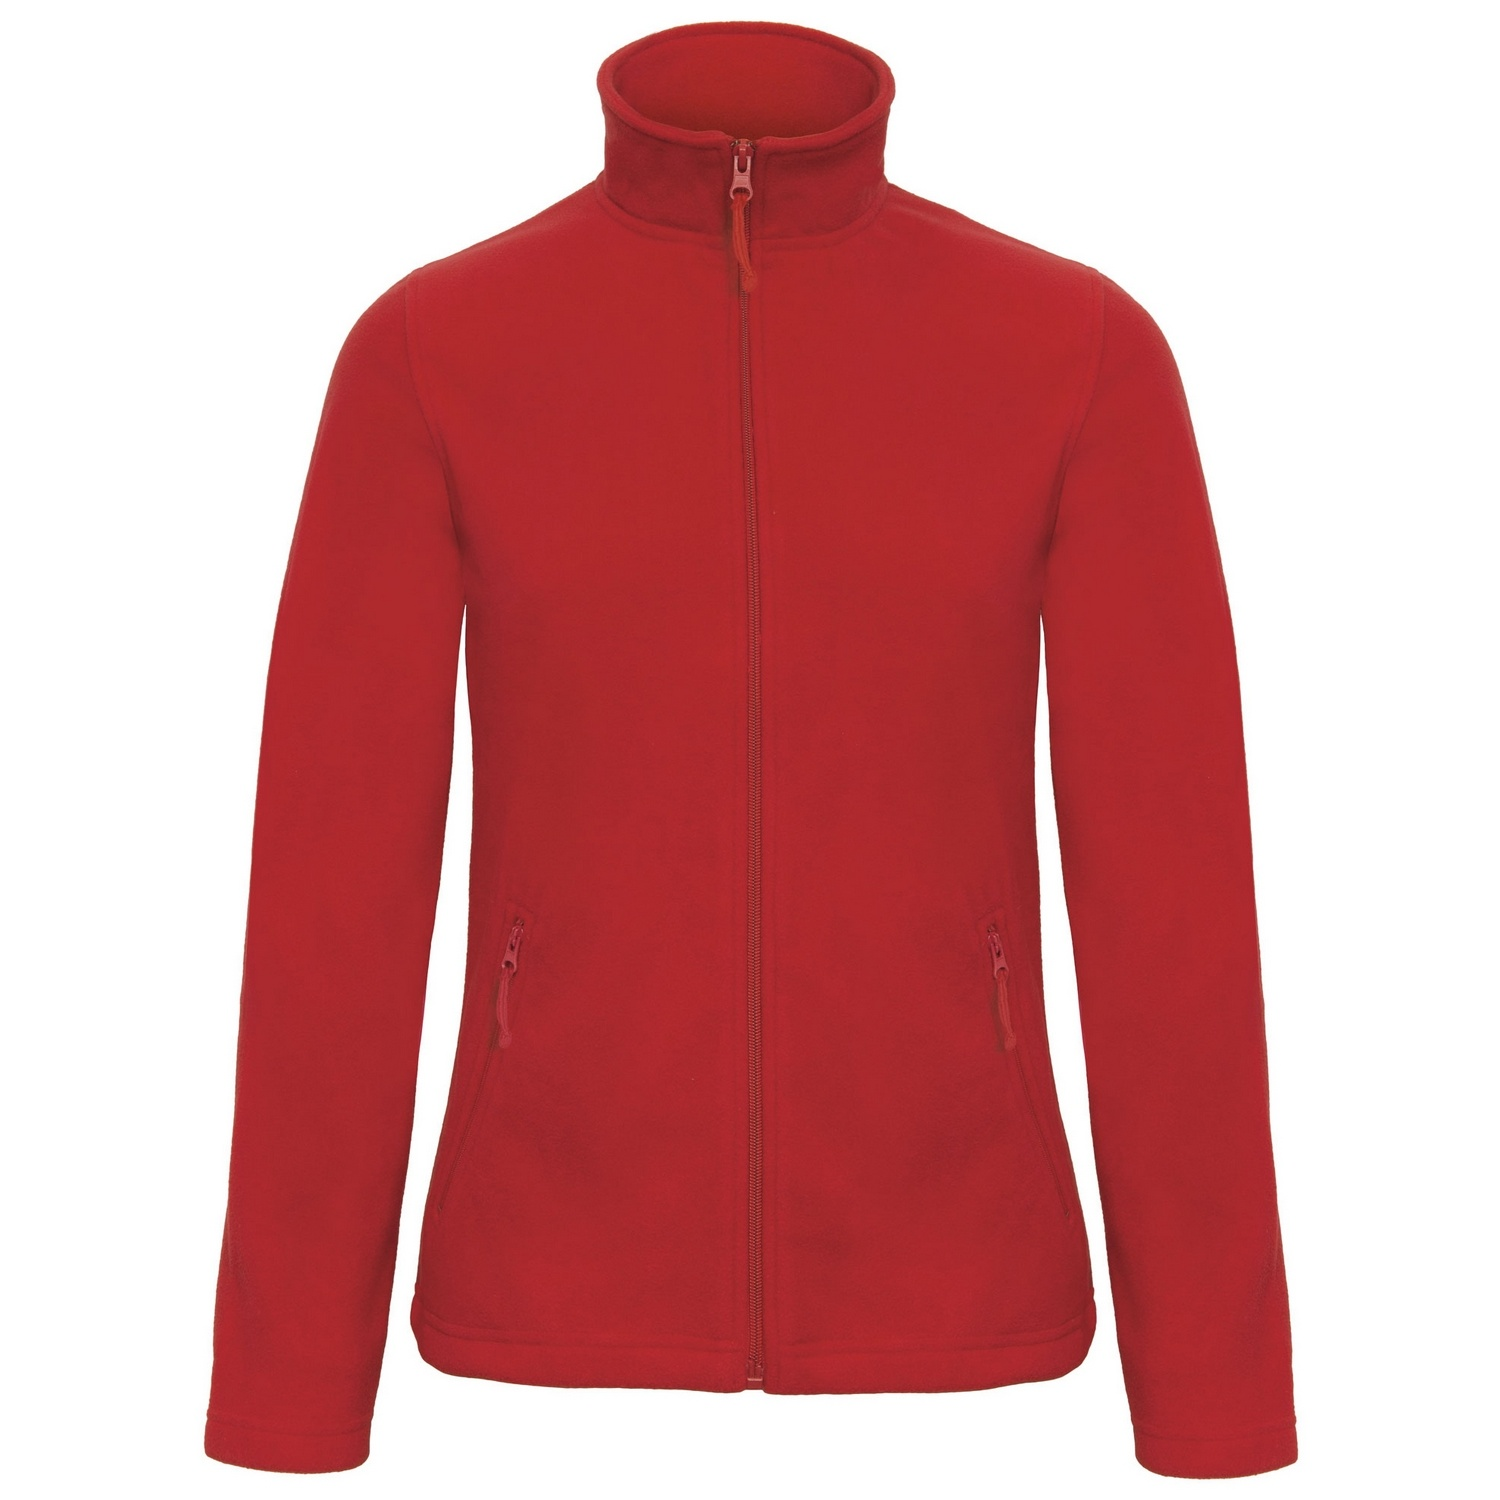 B&C Collection Womens/Ladies ID 501 Microfleece Jacket (3XL) (Red)